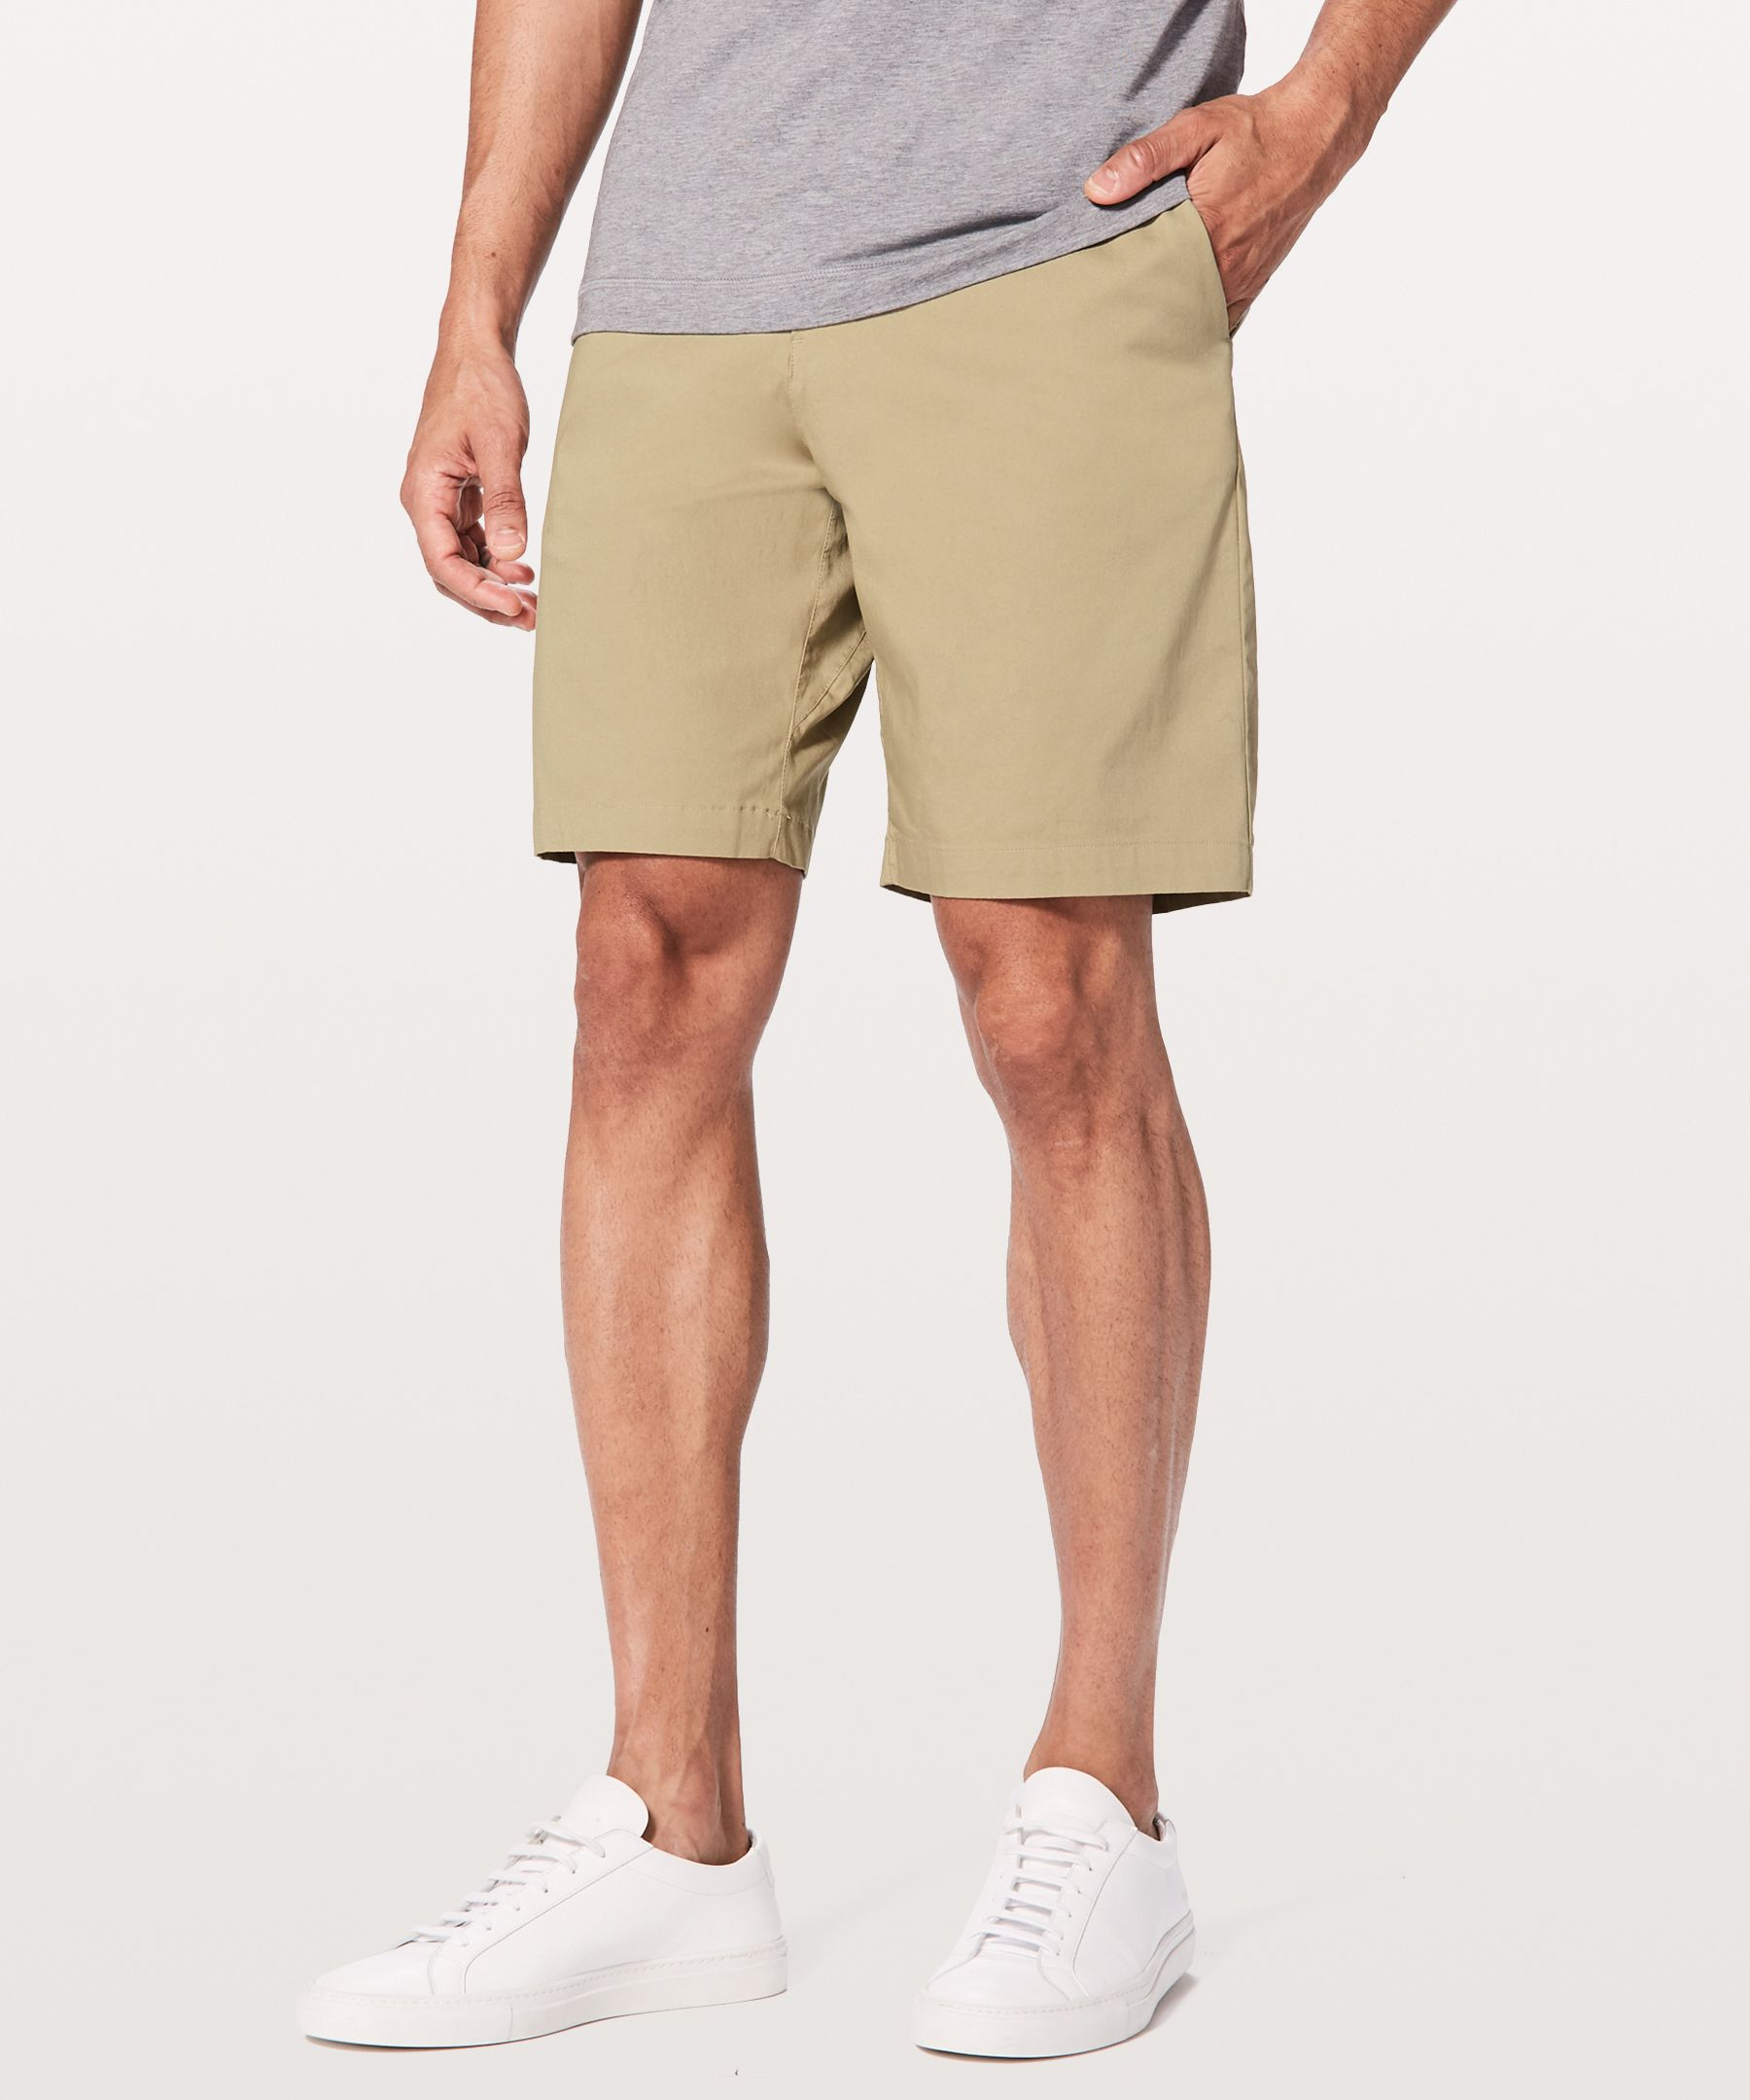 "Commission Short Slim Chino 9""New by Lululemon"